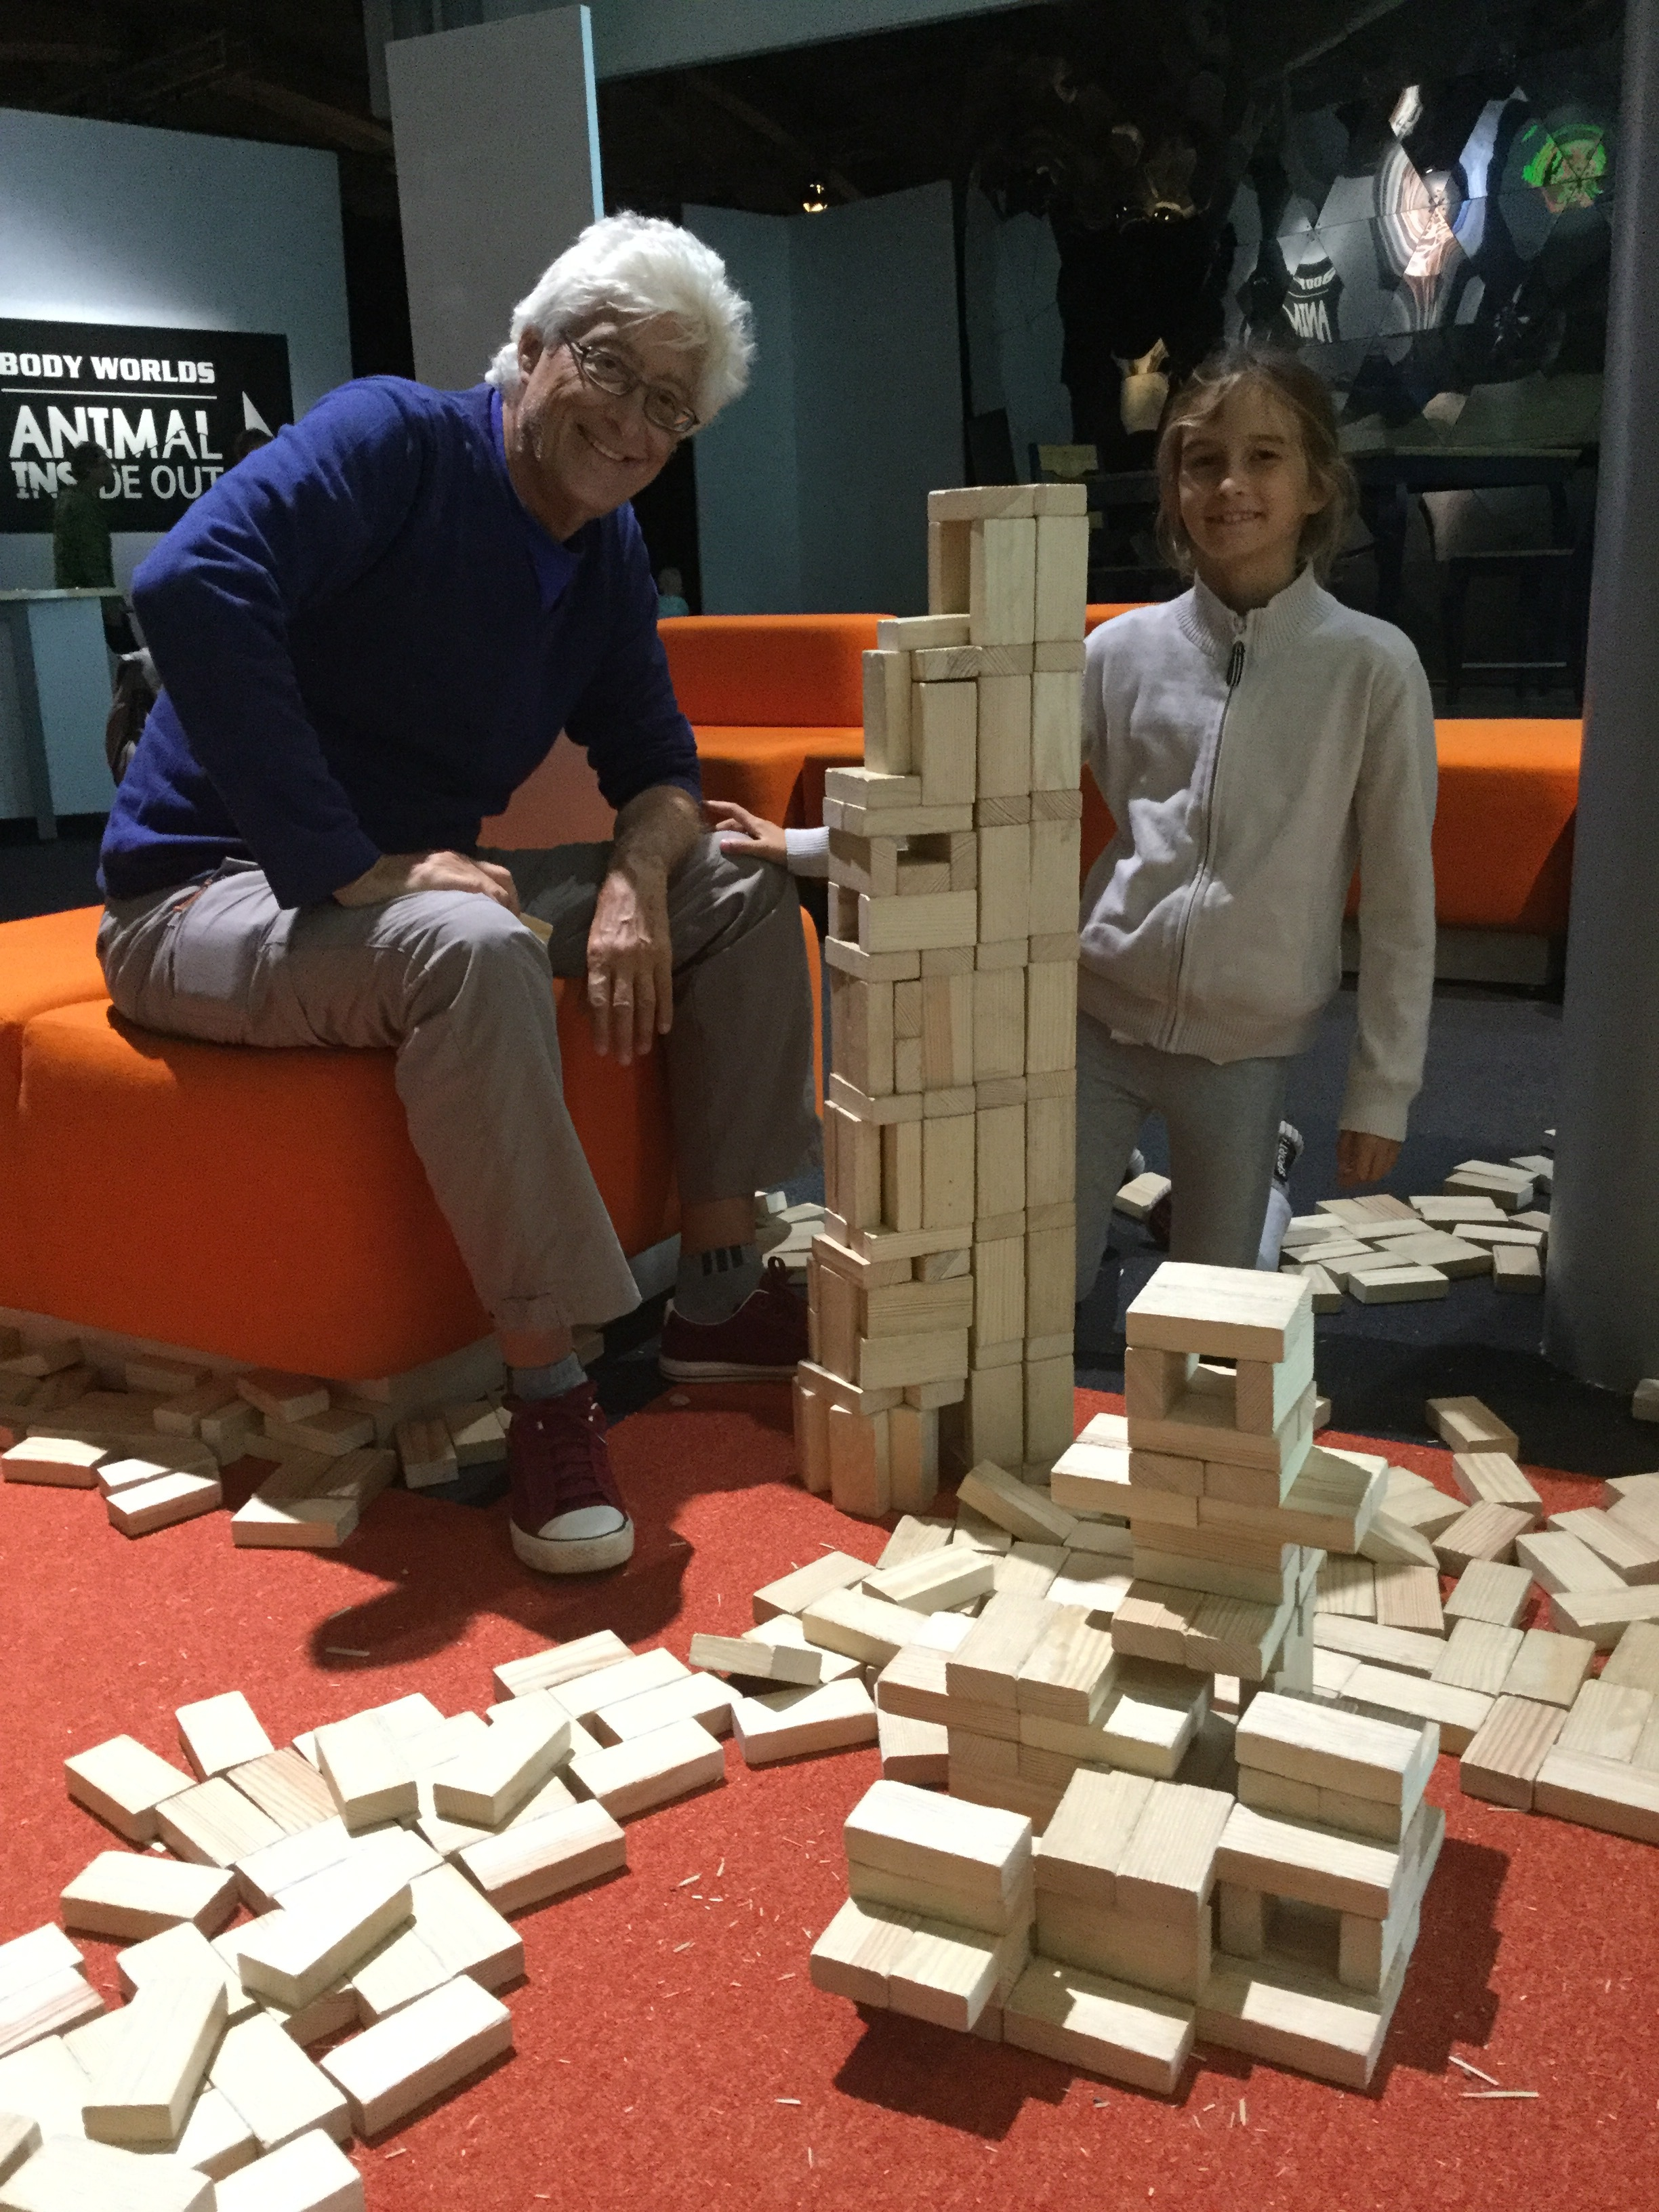 ...and right at the entry there is a big area with simple wooden blocks that anybody can play with. This is lots of fun!